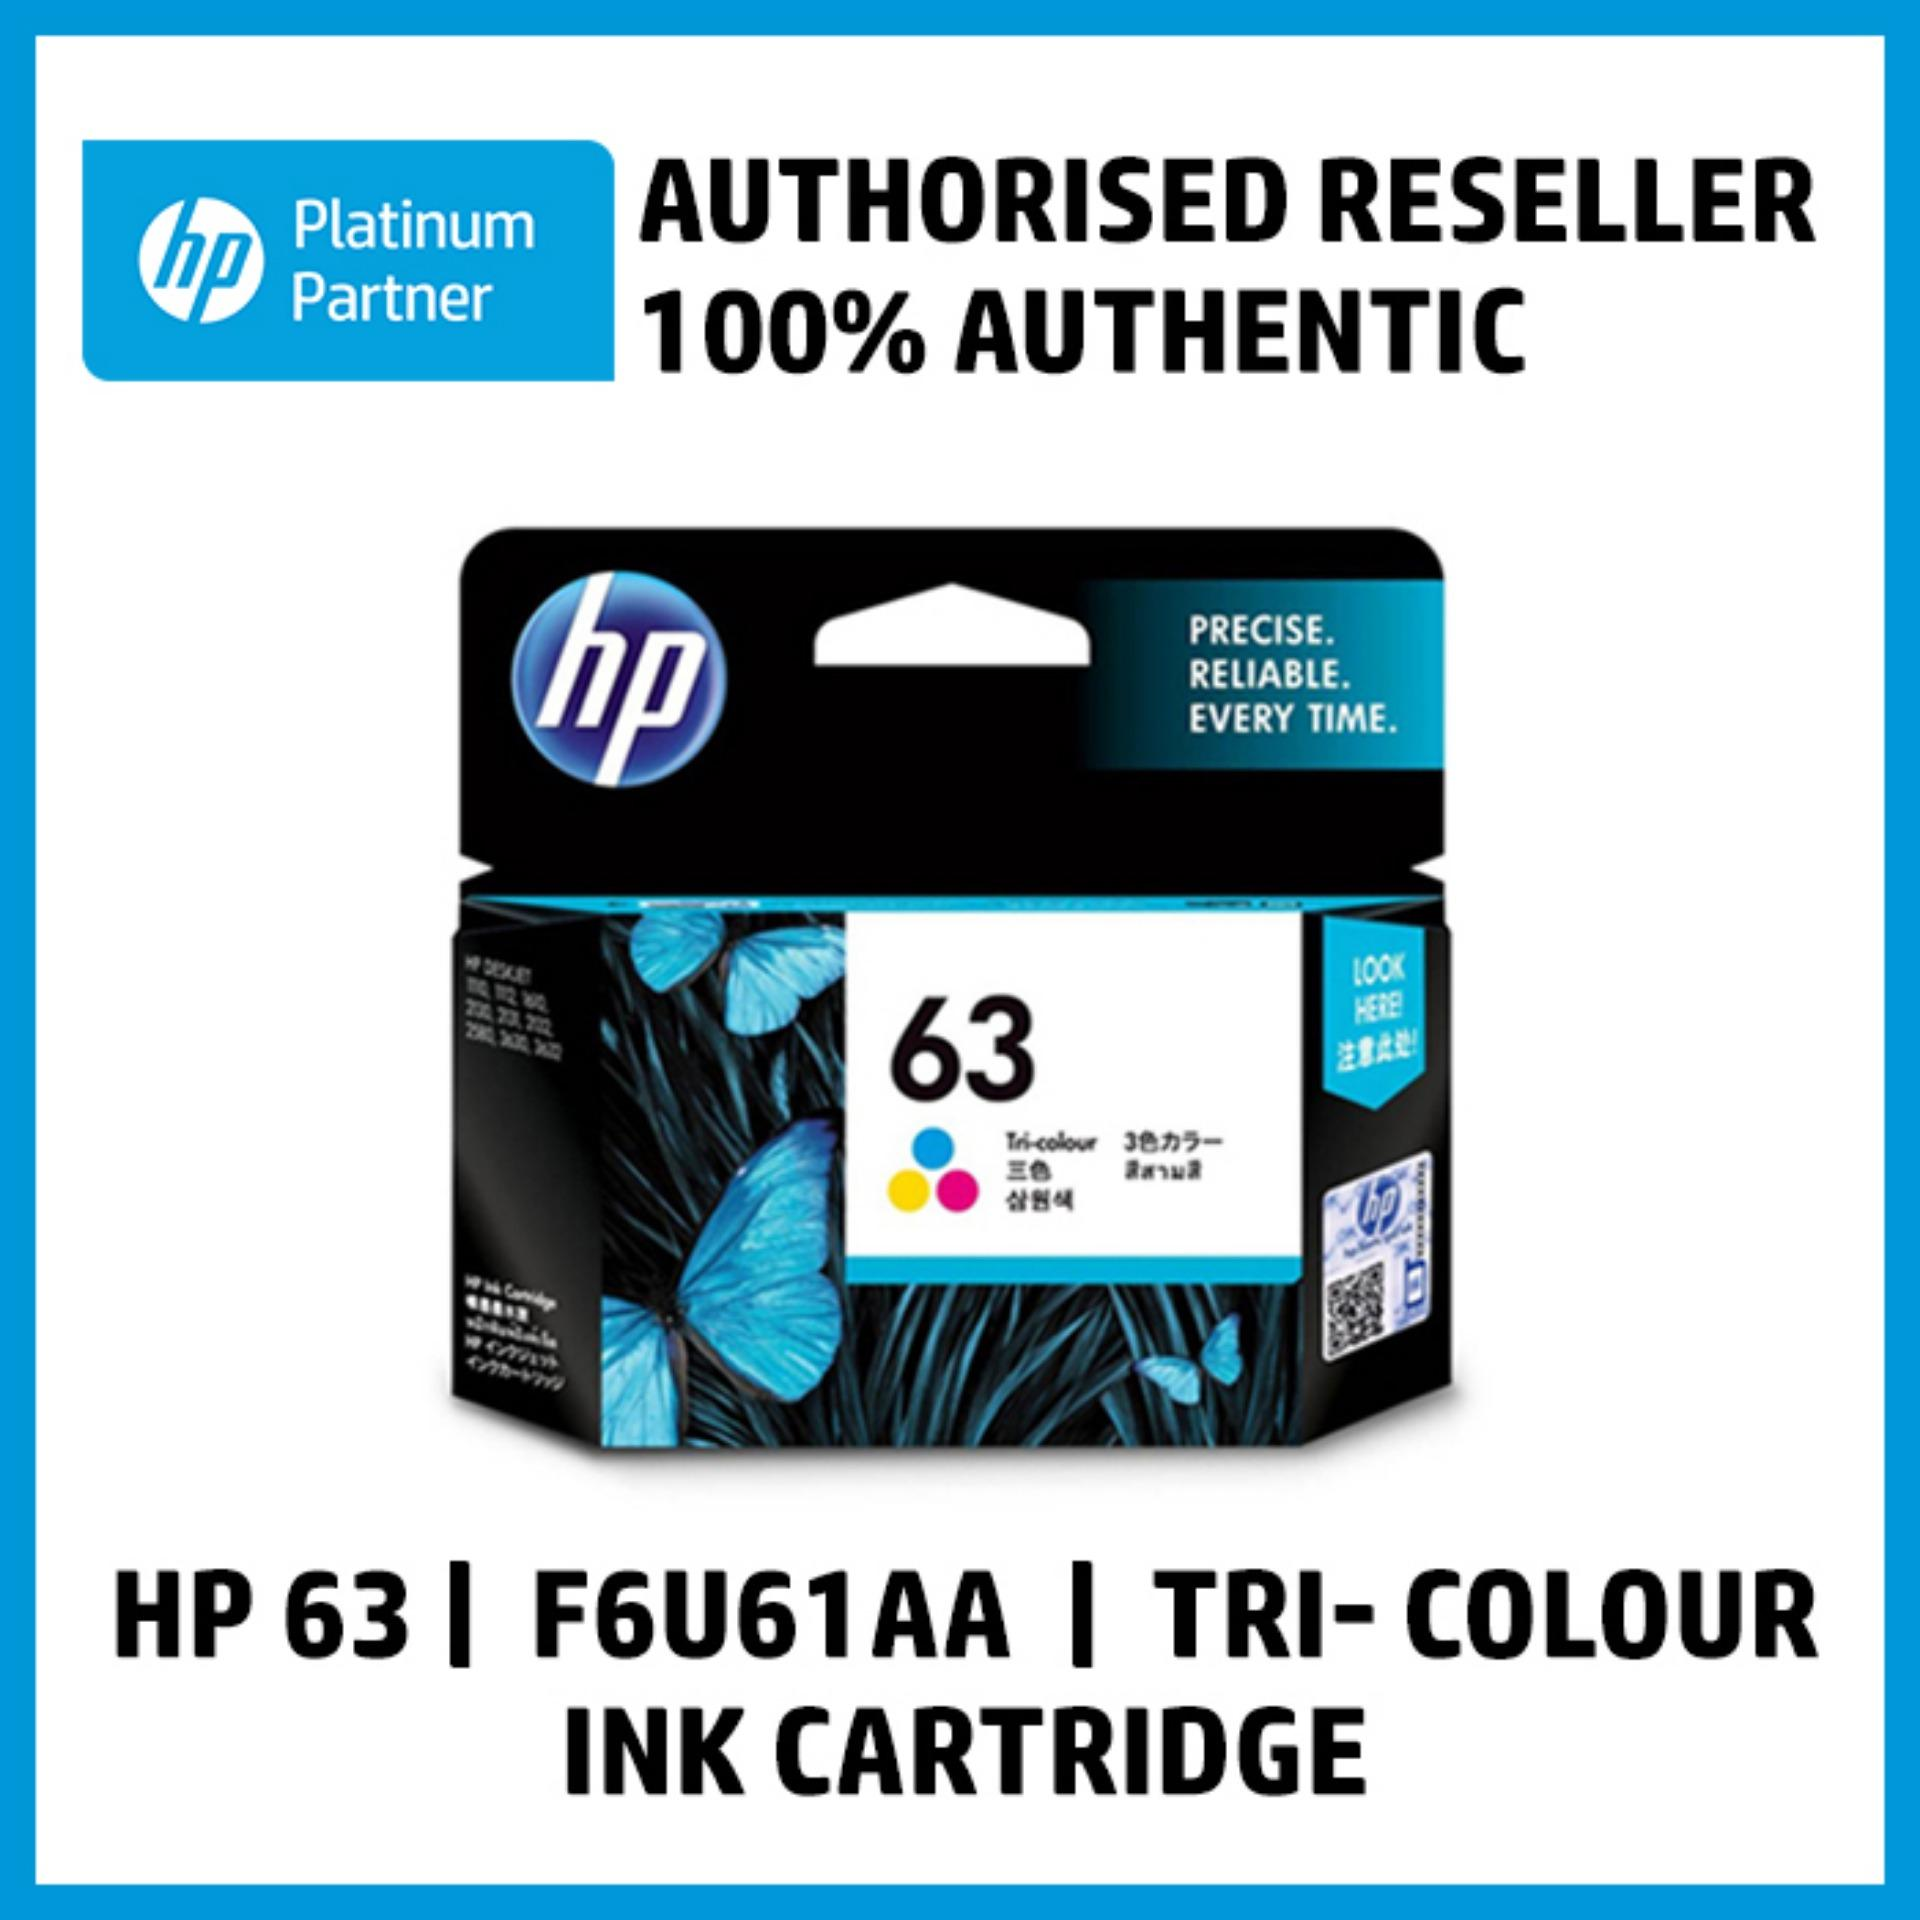 Hp 63 Tri-Color Original Ink Cartridge (f6u61aa) By Integrated Computer Systems, Inc..